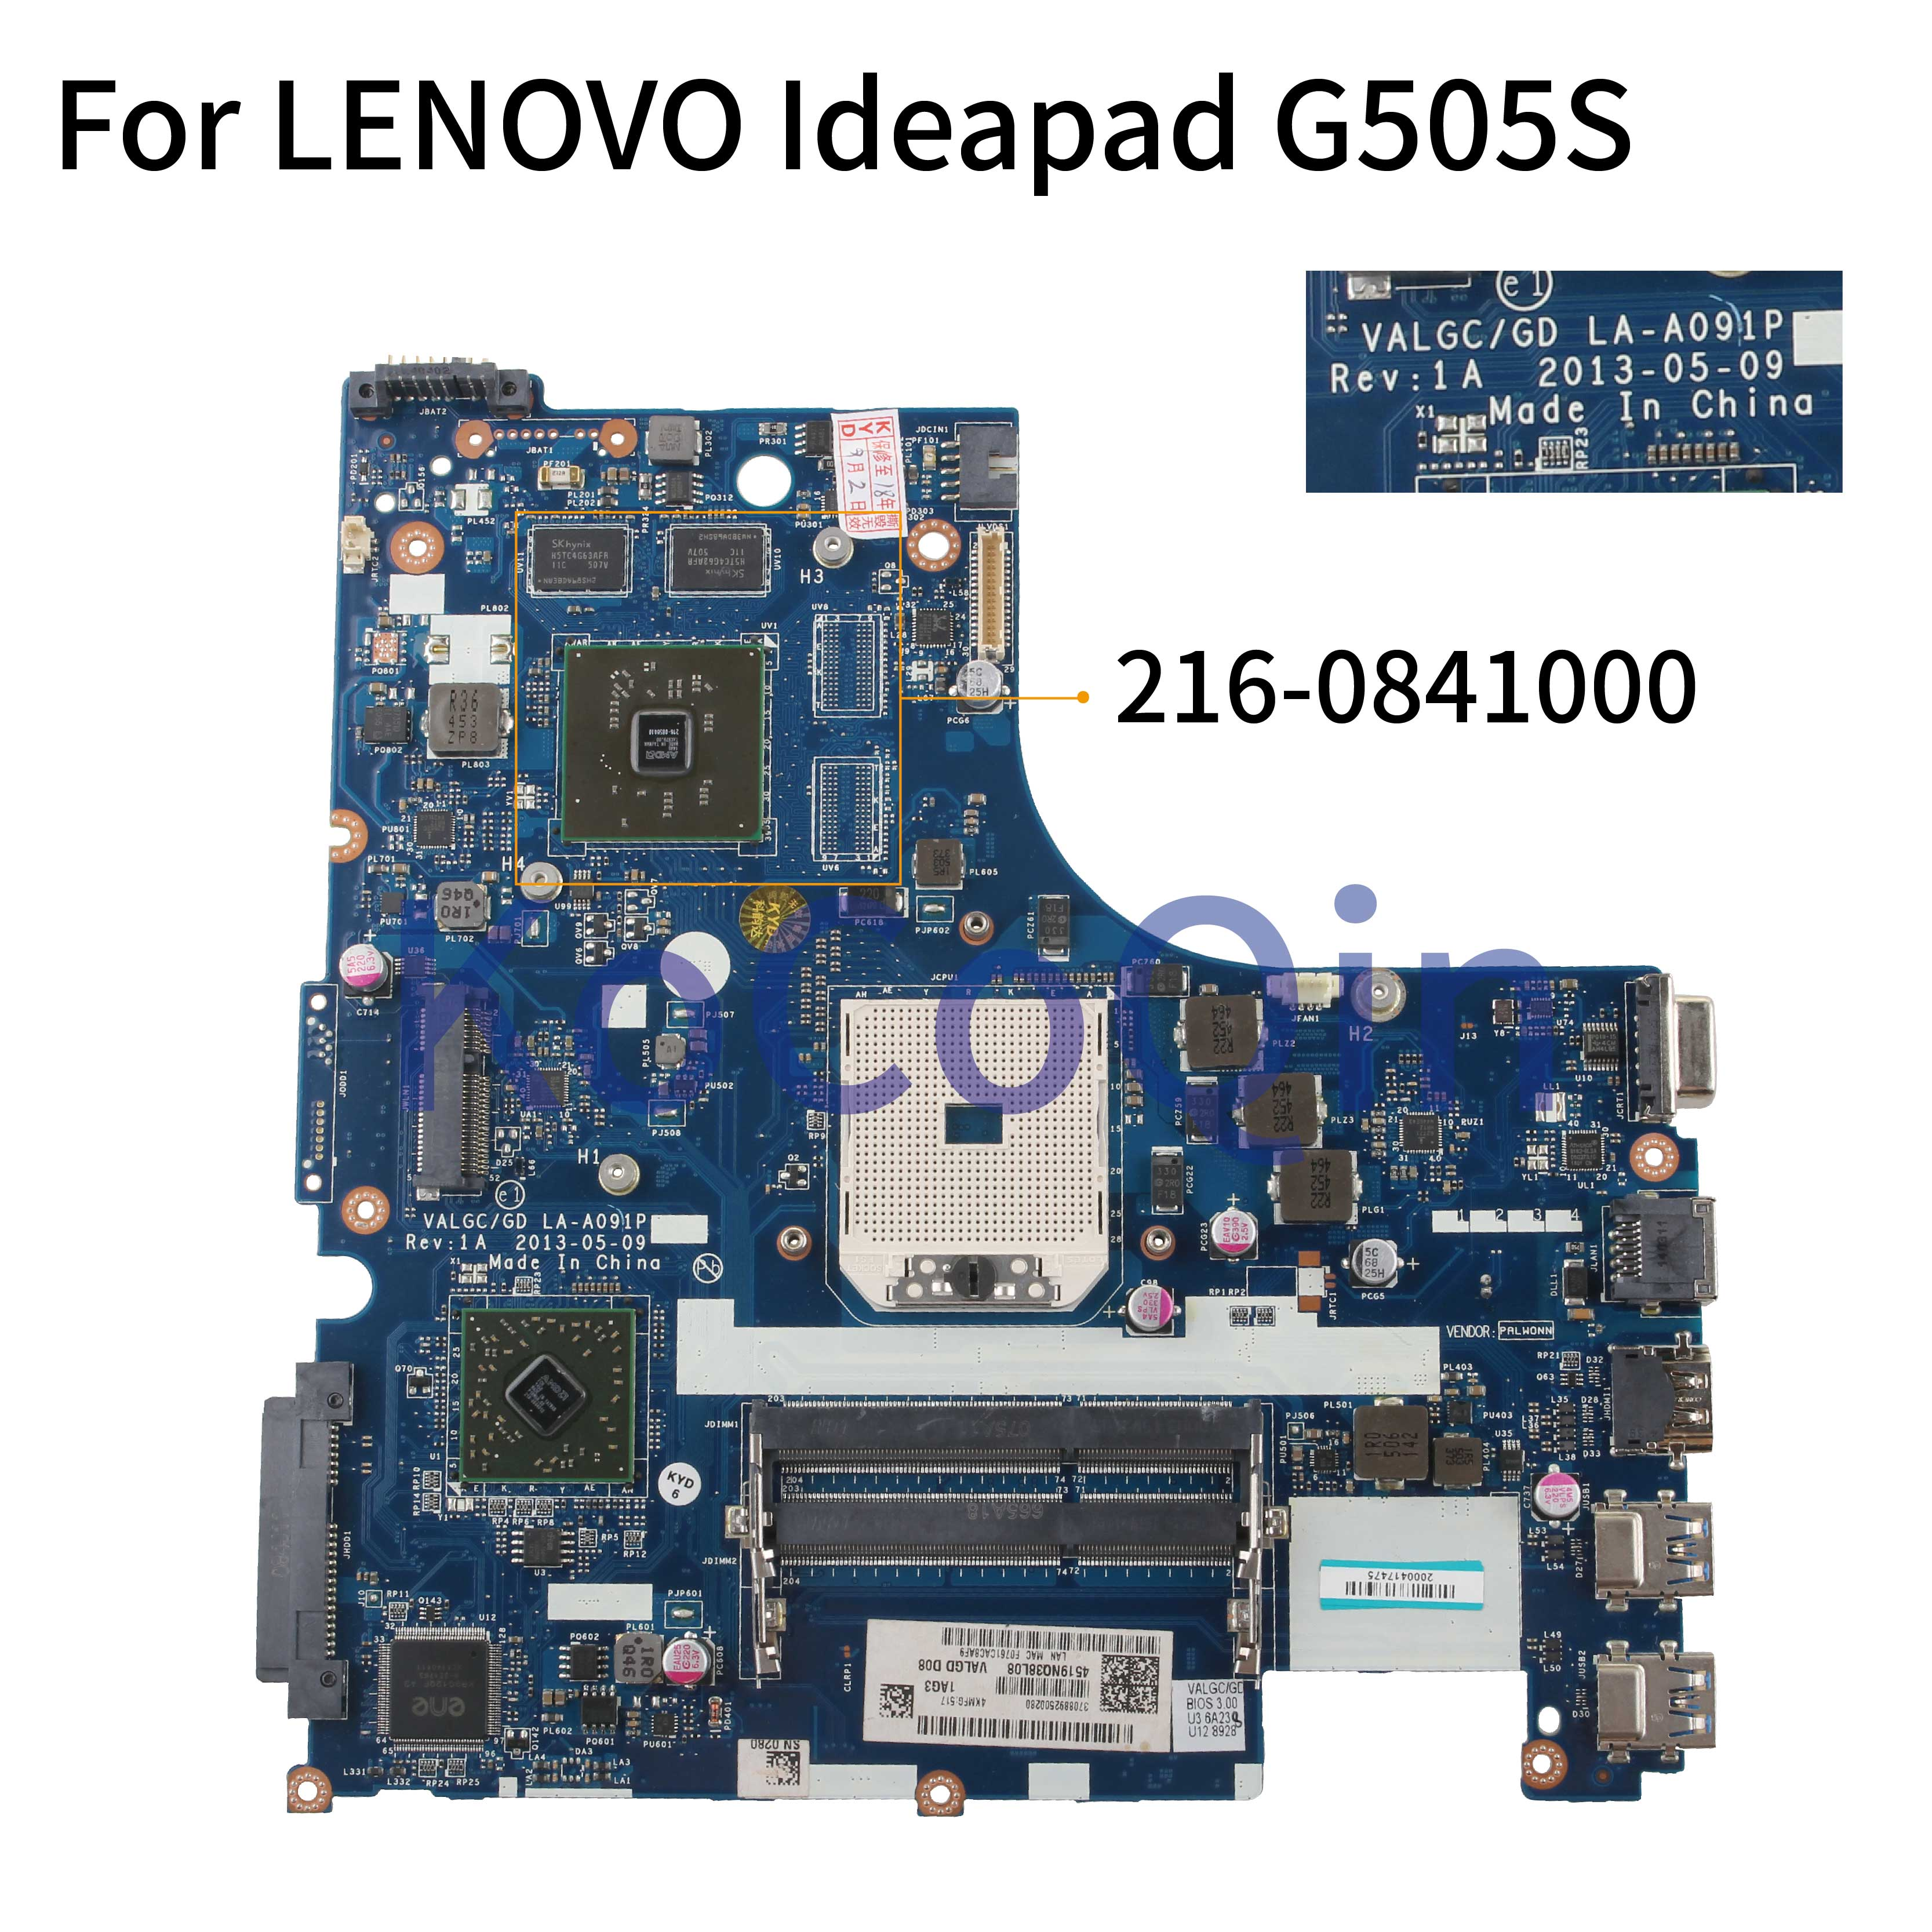 KoCoQin Laptop Motherboard For LENOVO Ideapad G505S Mainboard VALGC/GD LA-A091P AMD 216-0841000 2G